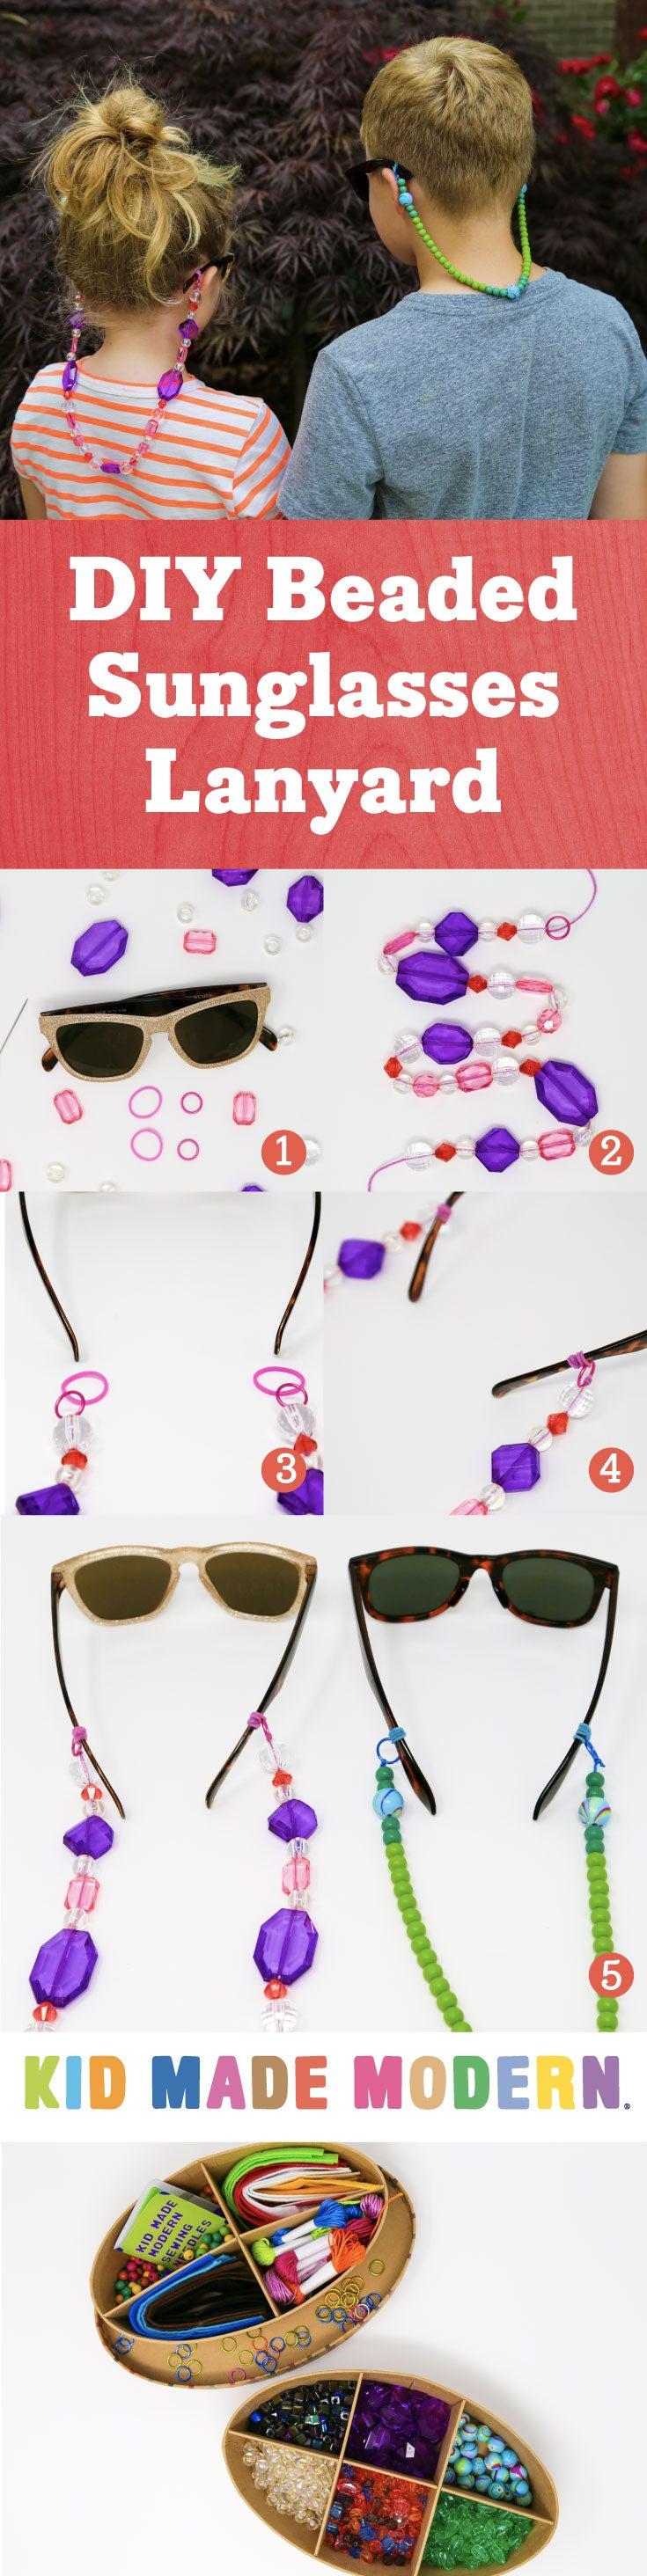 Beaded Sunglasses Lanyard Pinterest